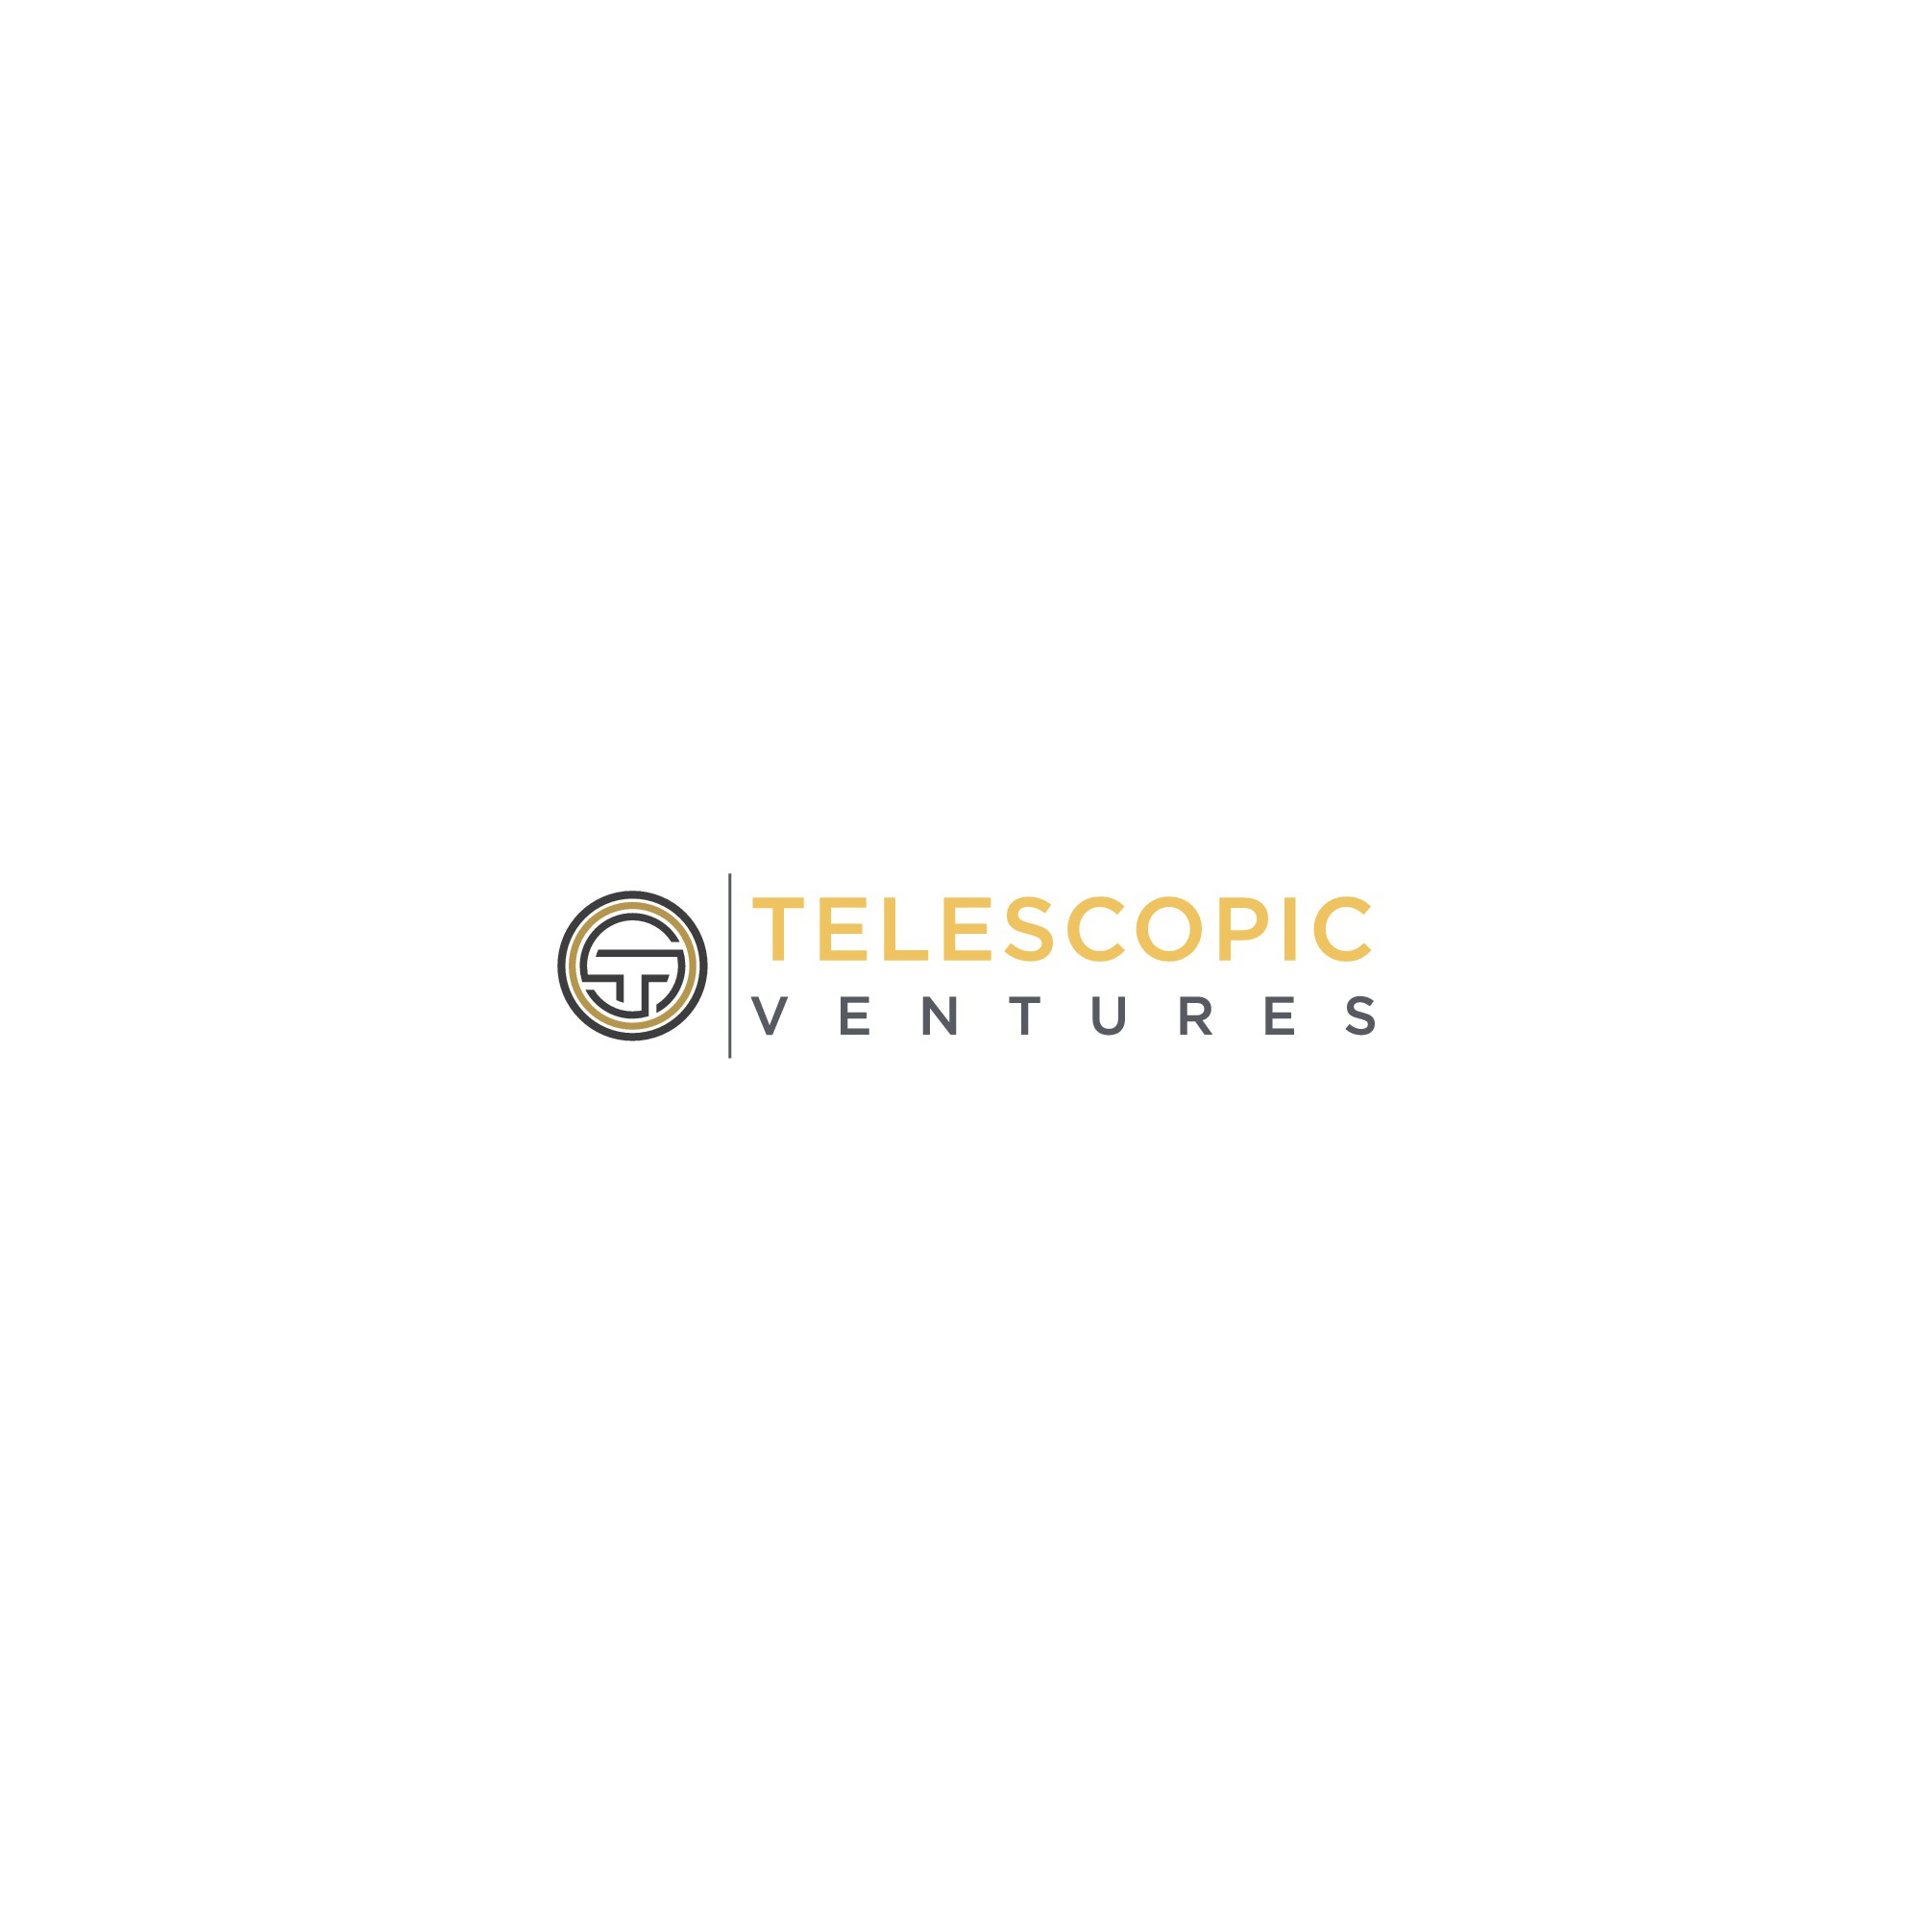 Startup technology investment firm looking for new logo